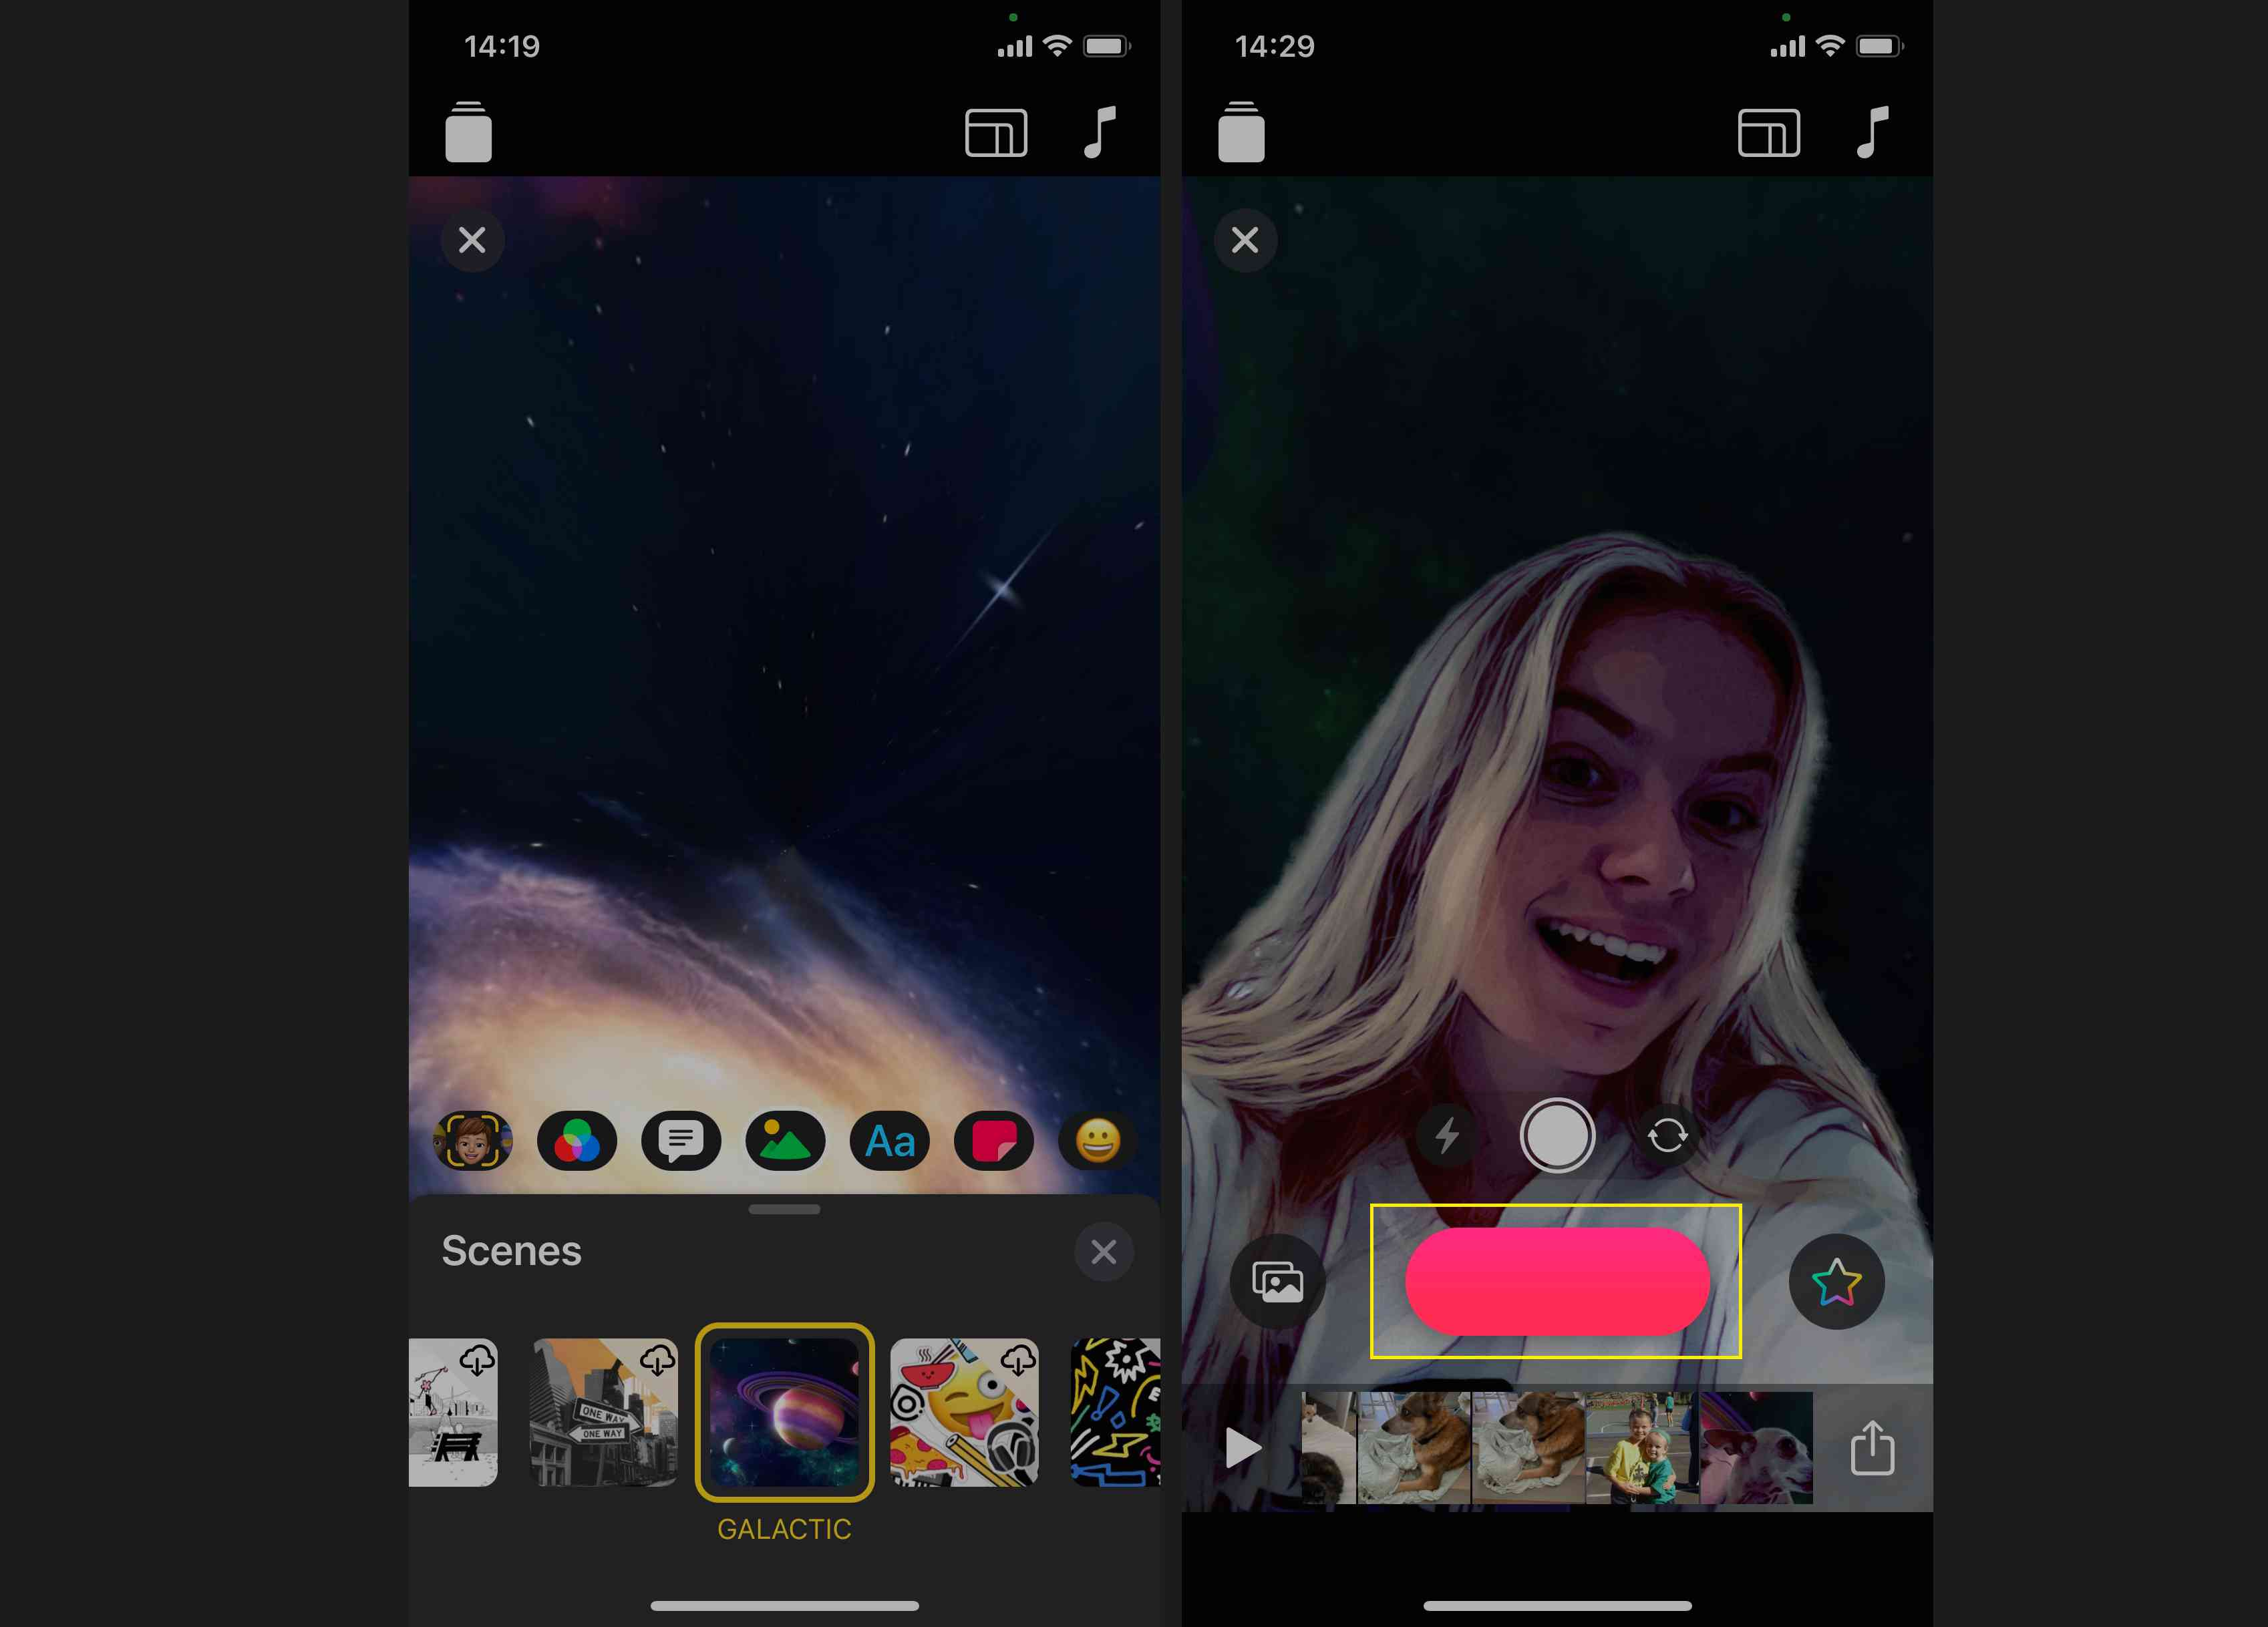 Tap and hold Record to record and add the Selfie Scene to your project's timeline.